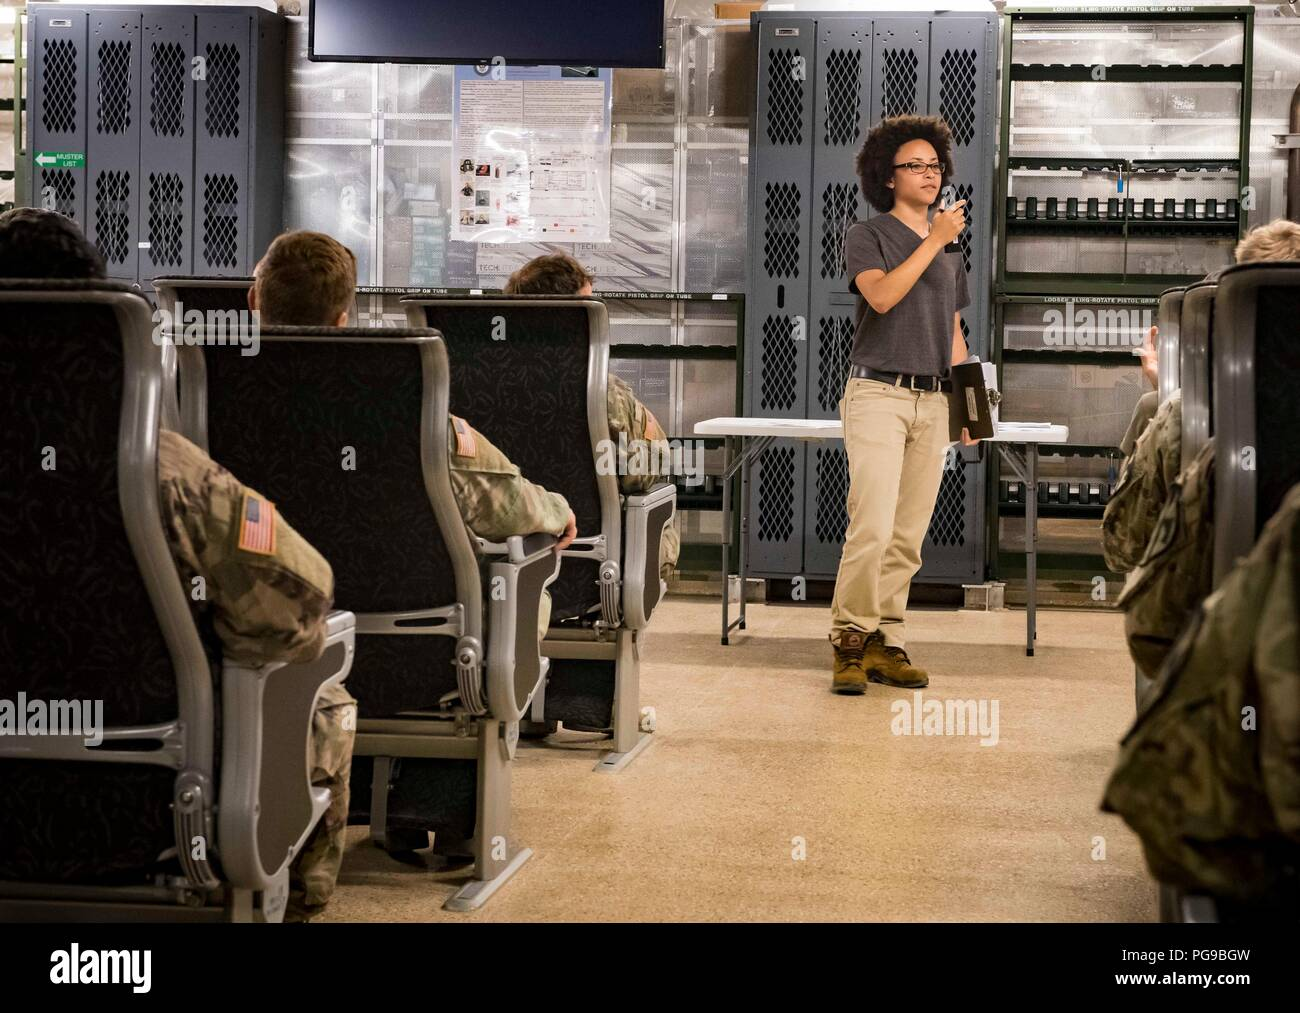 180818-N-RG482-385    POTI, Georgia (Aug. 18, 2018) Chief Mate Roshenda Josephs, a civil service mariner assigned to the Spearhead-class expeditionary fast transport ship USNS Carson City (T-EPF 7), provides a safety brief to U.S. Army Soldiers assigned Bravo Company, 2nd Battalion, 5th Cavalry Regiment, 1st Armored Brigade Combat Team, 1st Cavalry Division Aug. 18, 2018. Carson City is the seventh of nine expeditionary fast transport ships in Military Sealift Command's inventory with a primary mission of providing rapid transport of military equipment and personnel in theater via its 20,000 s Stock Photo